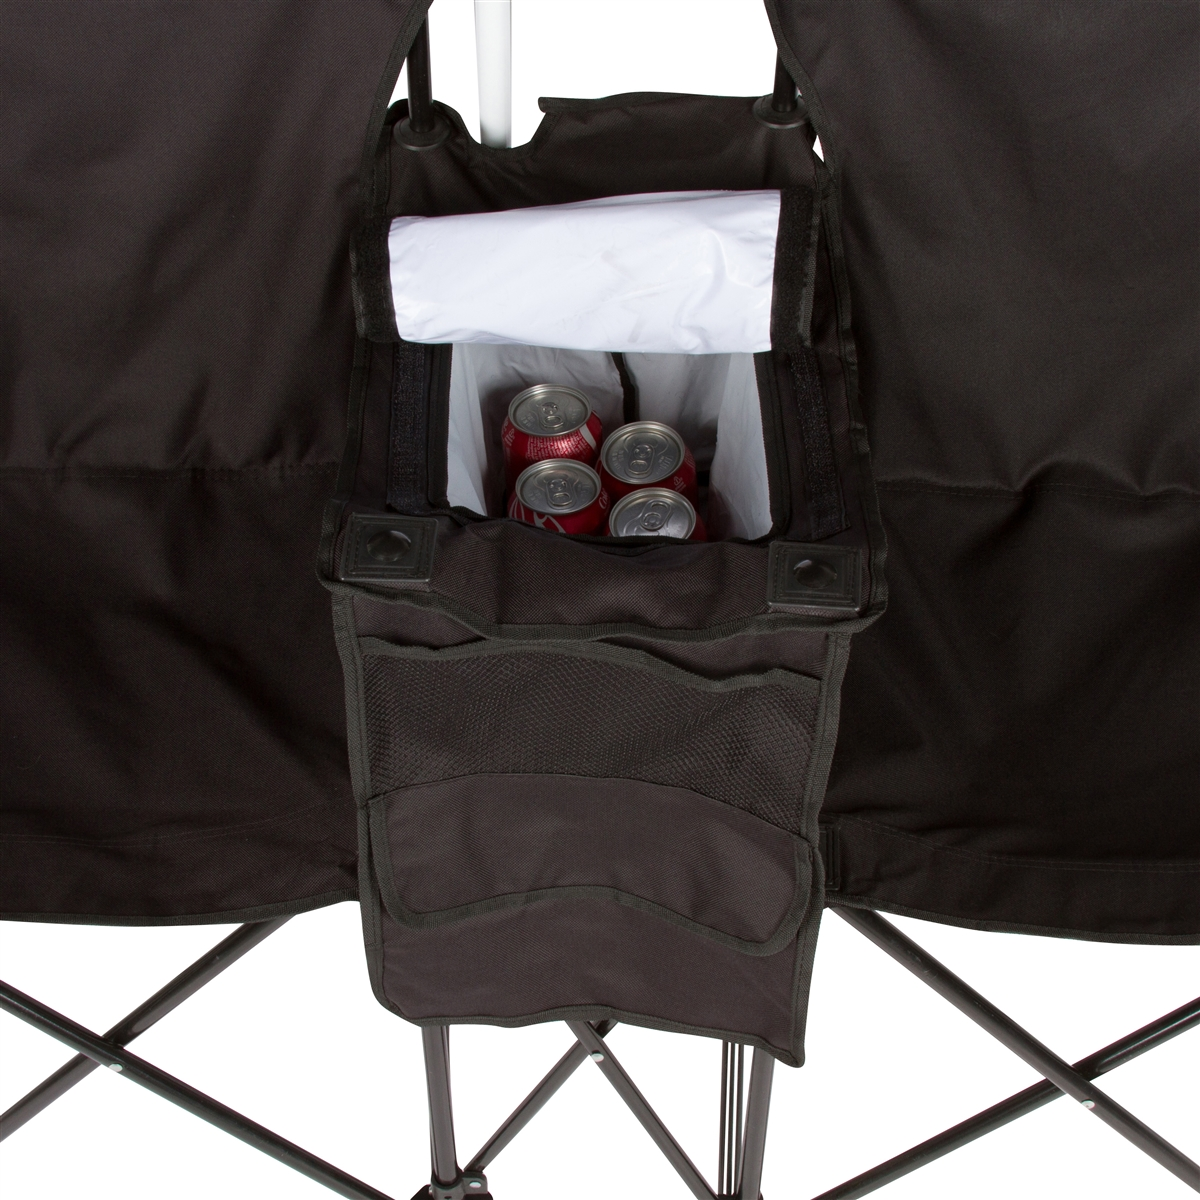 Beach chair and umbrella black and white - Double Folding Camp And Beach Chair With Removable Umbrella And Cooler By Trademark Innovations Black